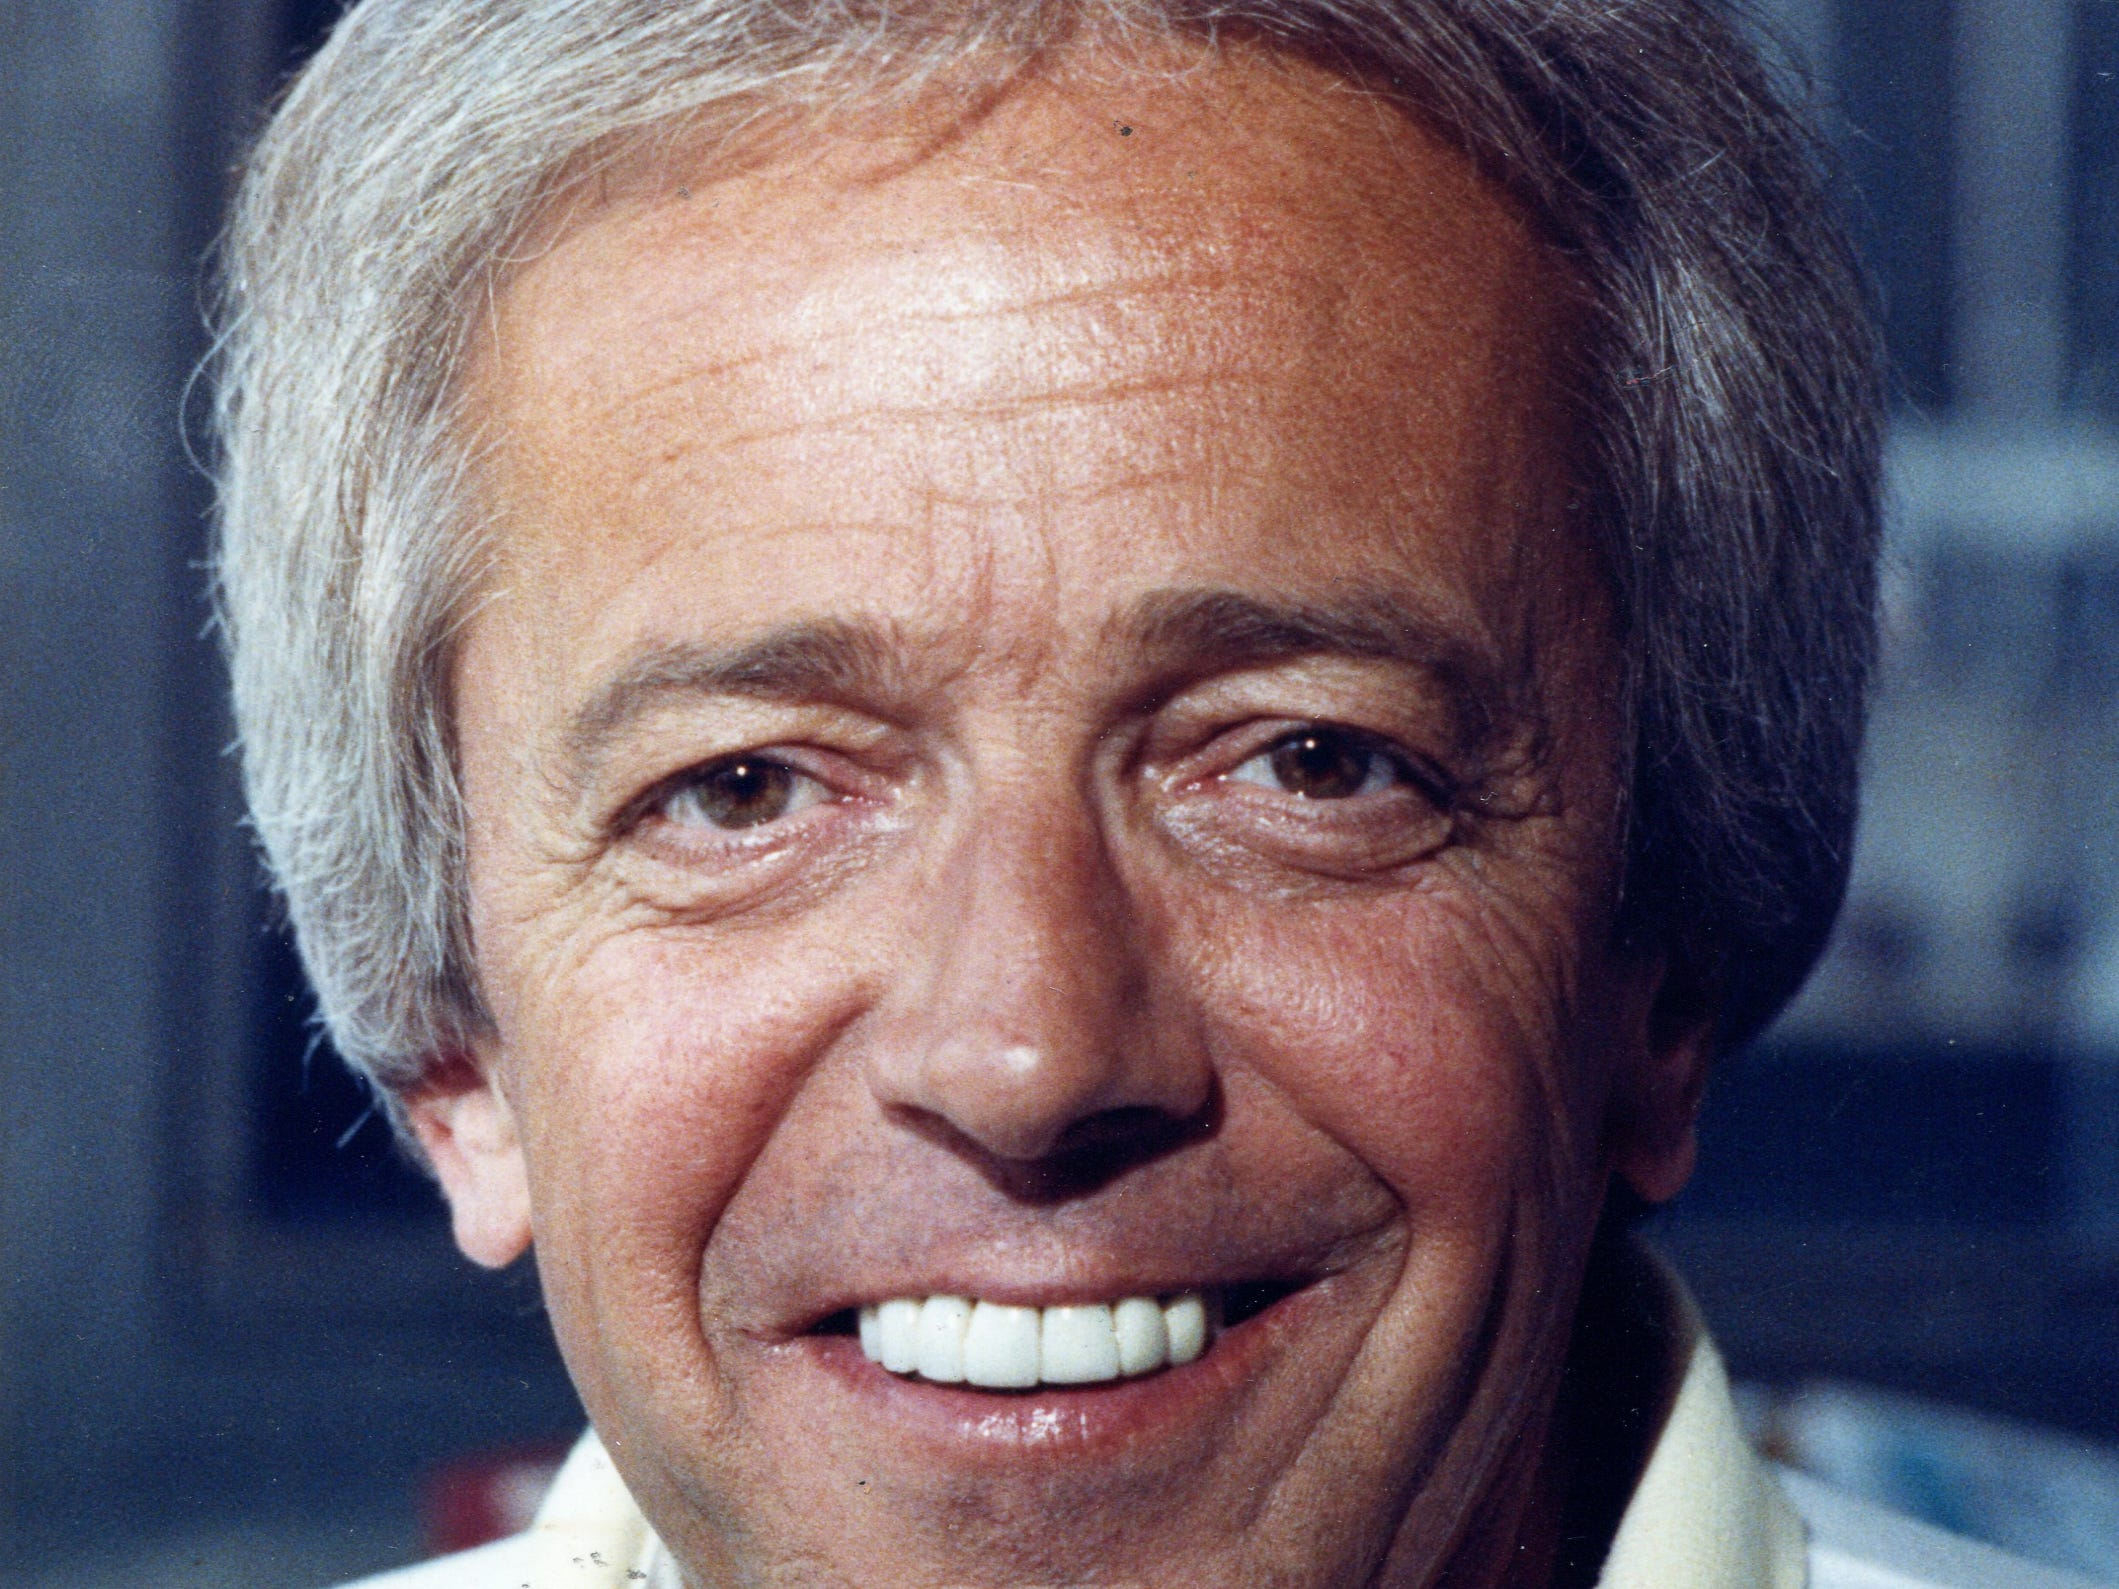 Marty Brennaman, Cincinnati Reds broadcaster. File photo from 1991.